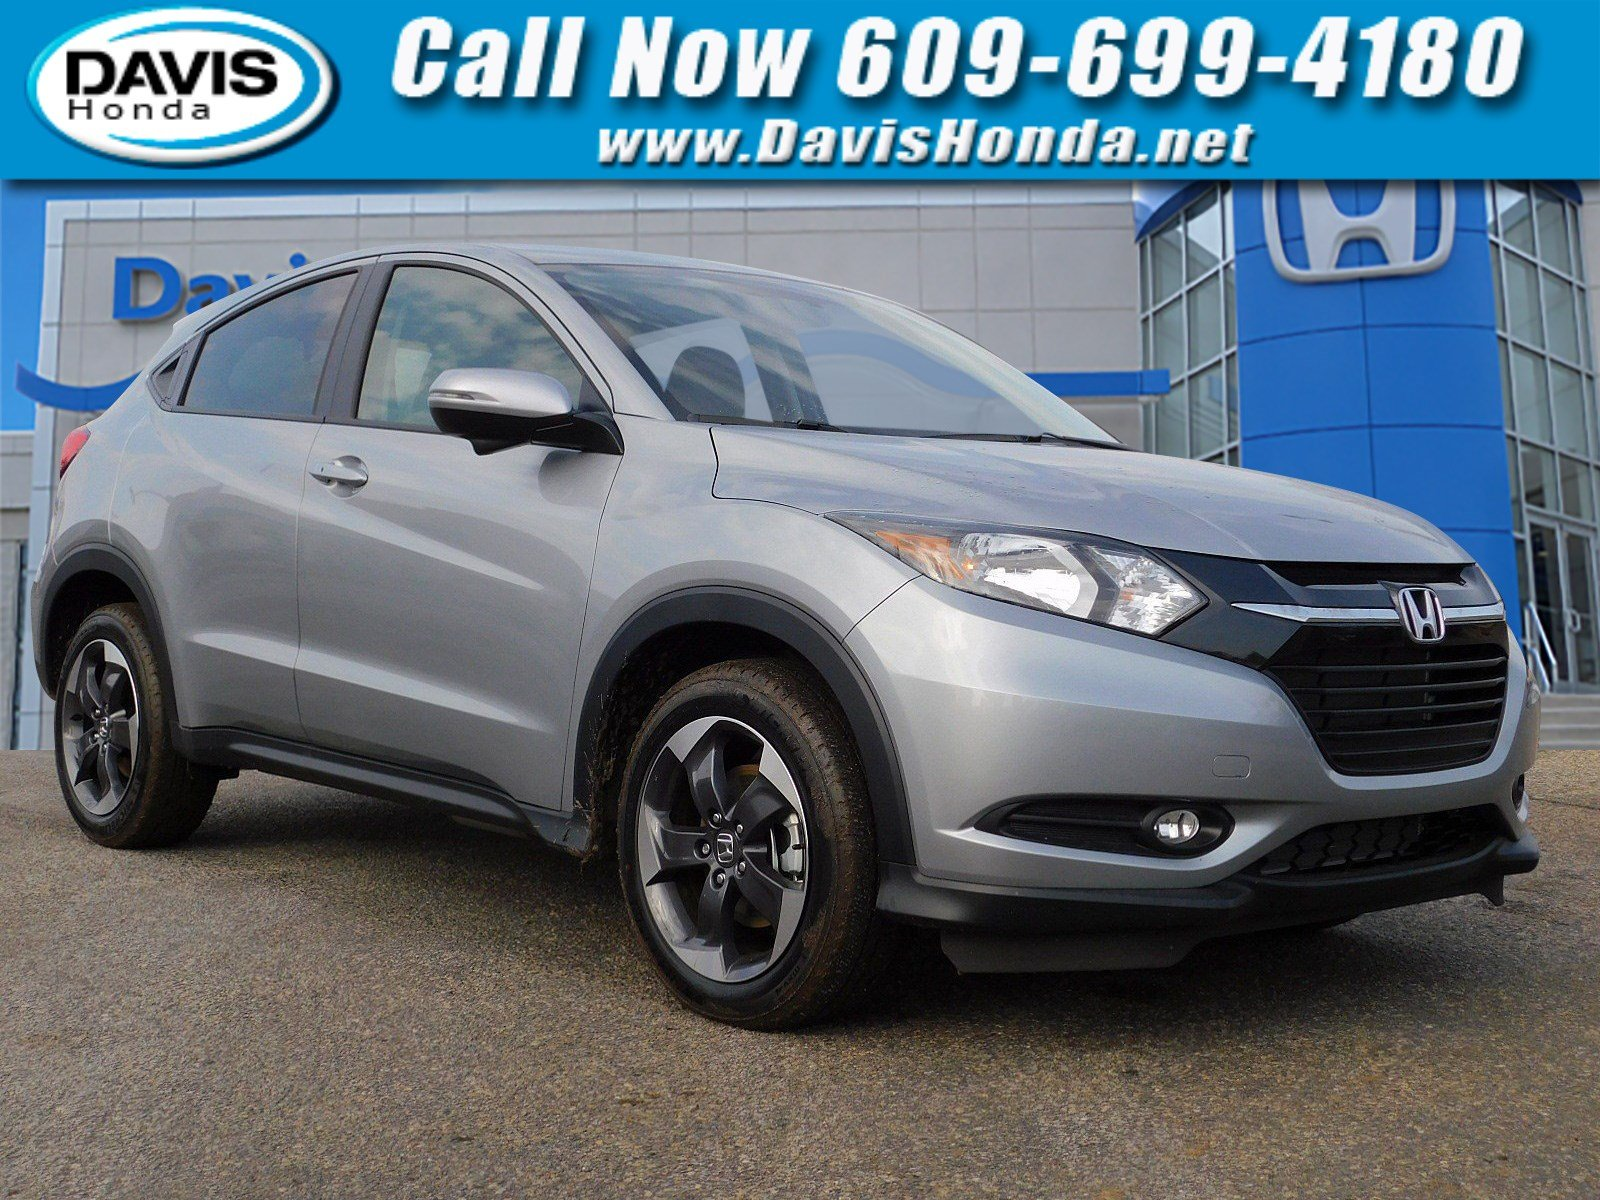 Honda Hrv Avis 2018 Used Honda Hr V For Sale At Davis Hyundai In Ewing Nj Near Trenton Hamilton Princeton 11765u